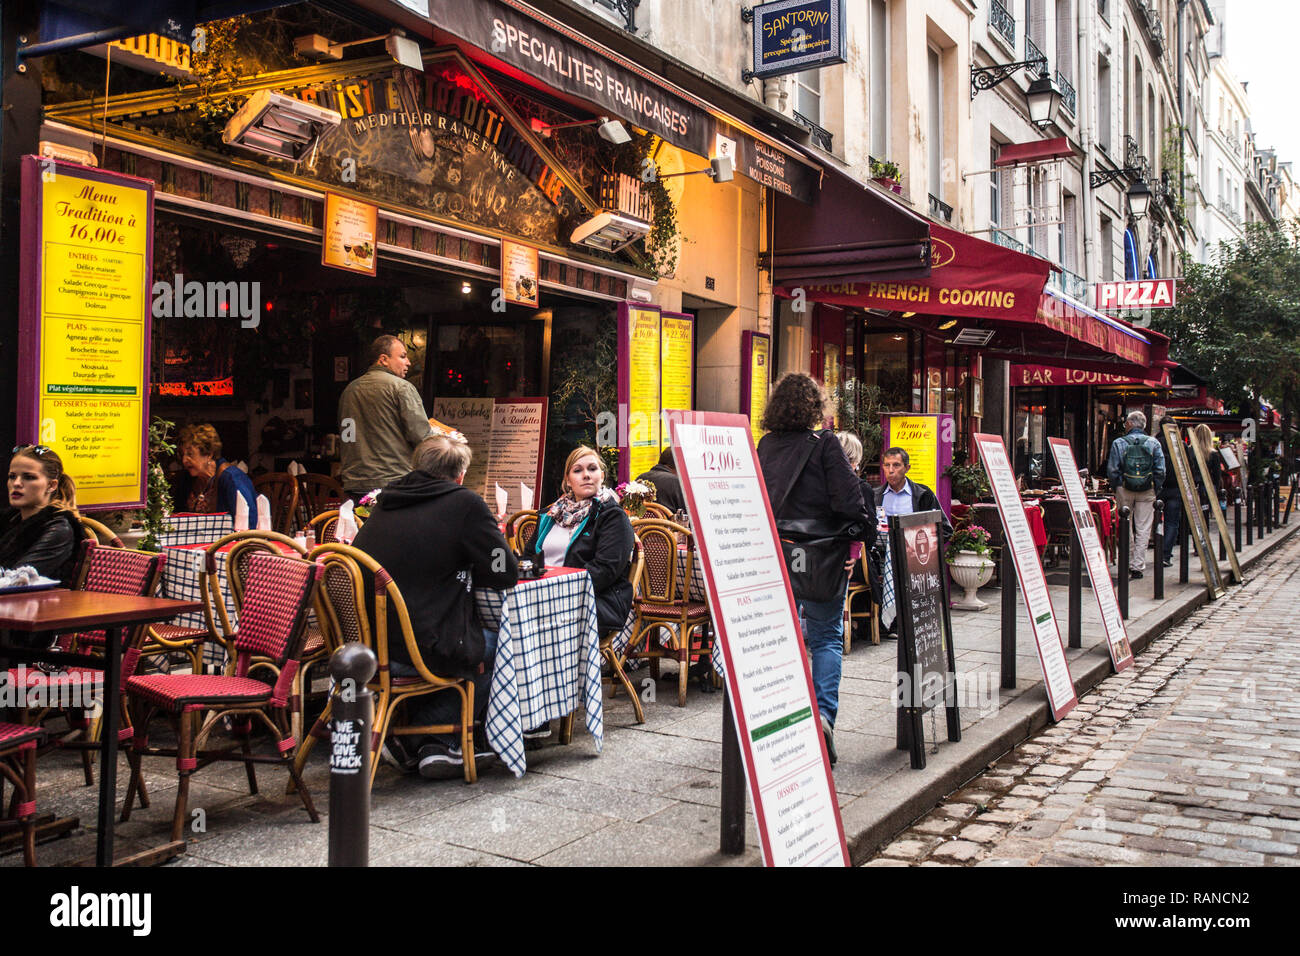 PARIS, FRANCE - OCTOBER 9, 2014: Street scene from the Latin Quarter, Saint-Michel in Paris France with outdoor cafes and people. - Stock Image